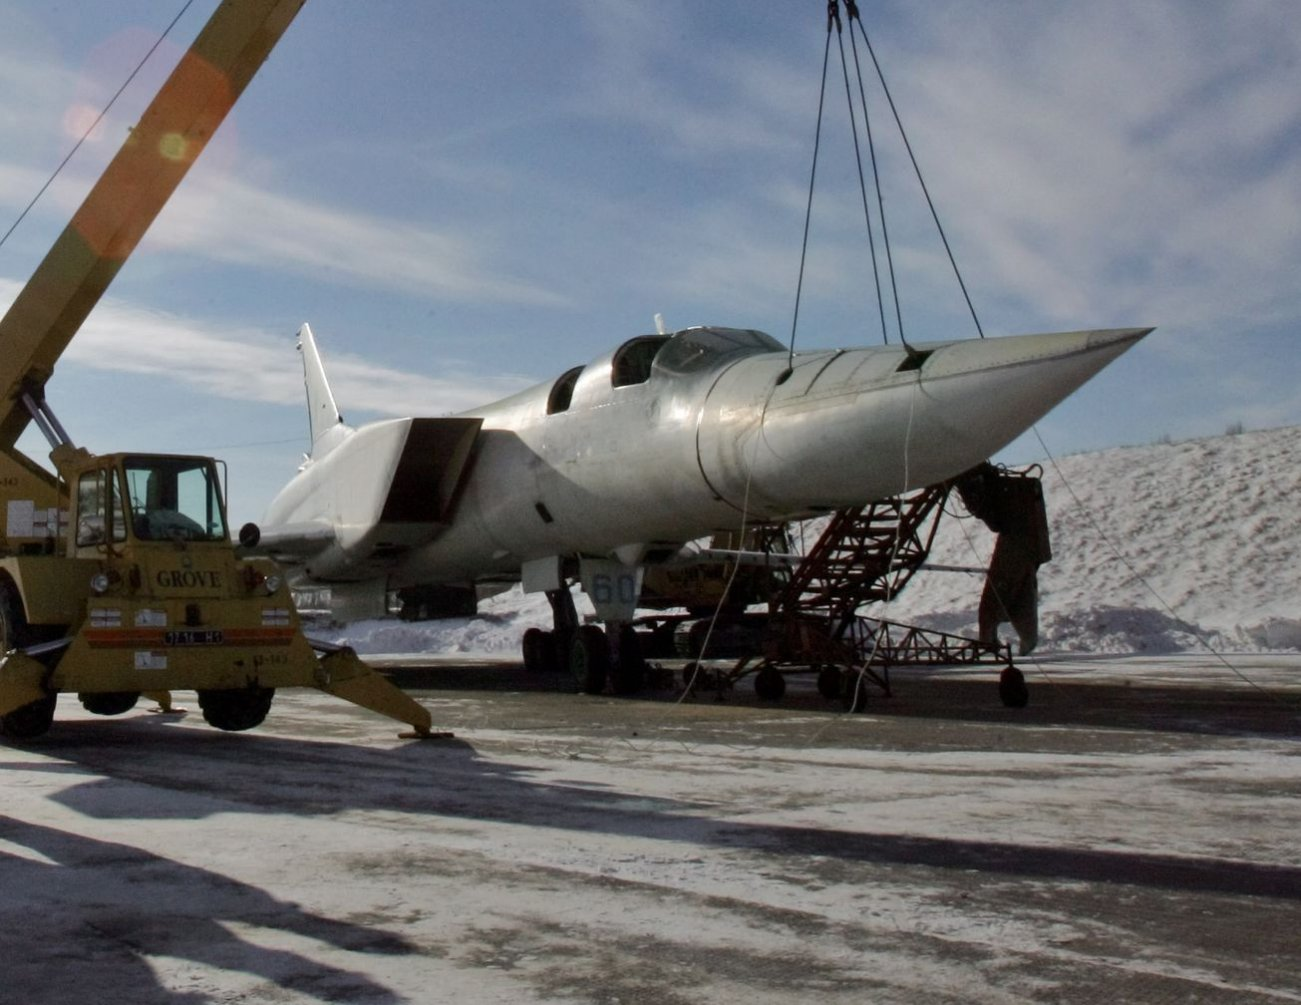 Supersonic Disaster: Why Was Russia's Tu-22 Bomber So Bad?